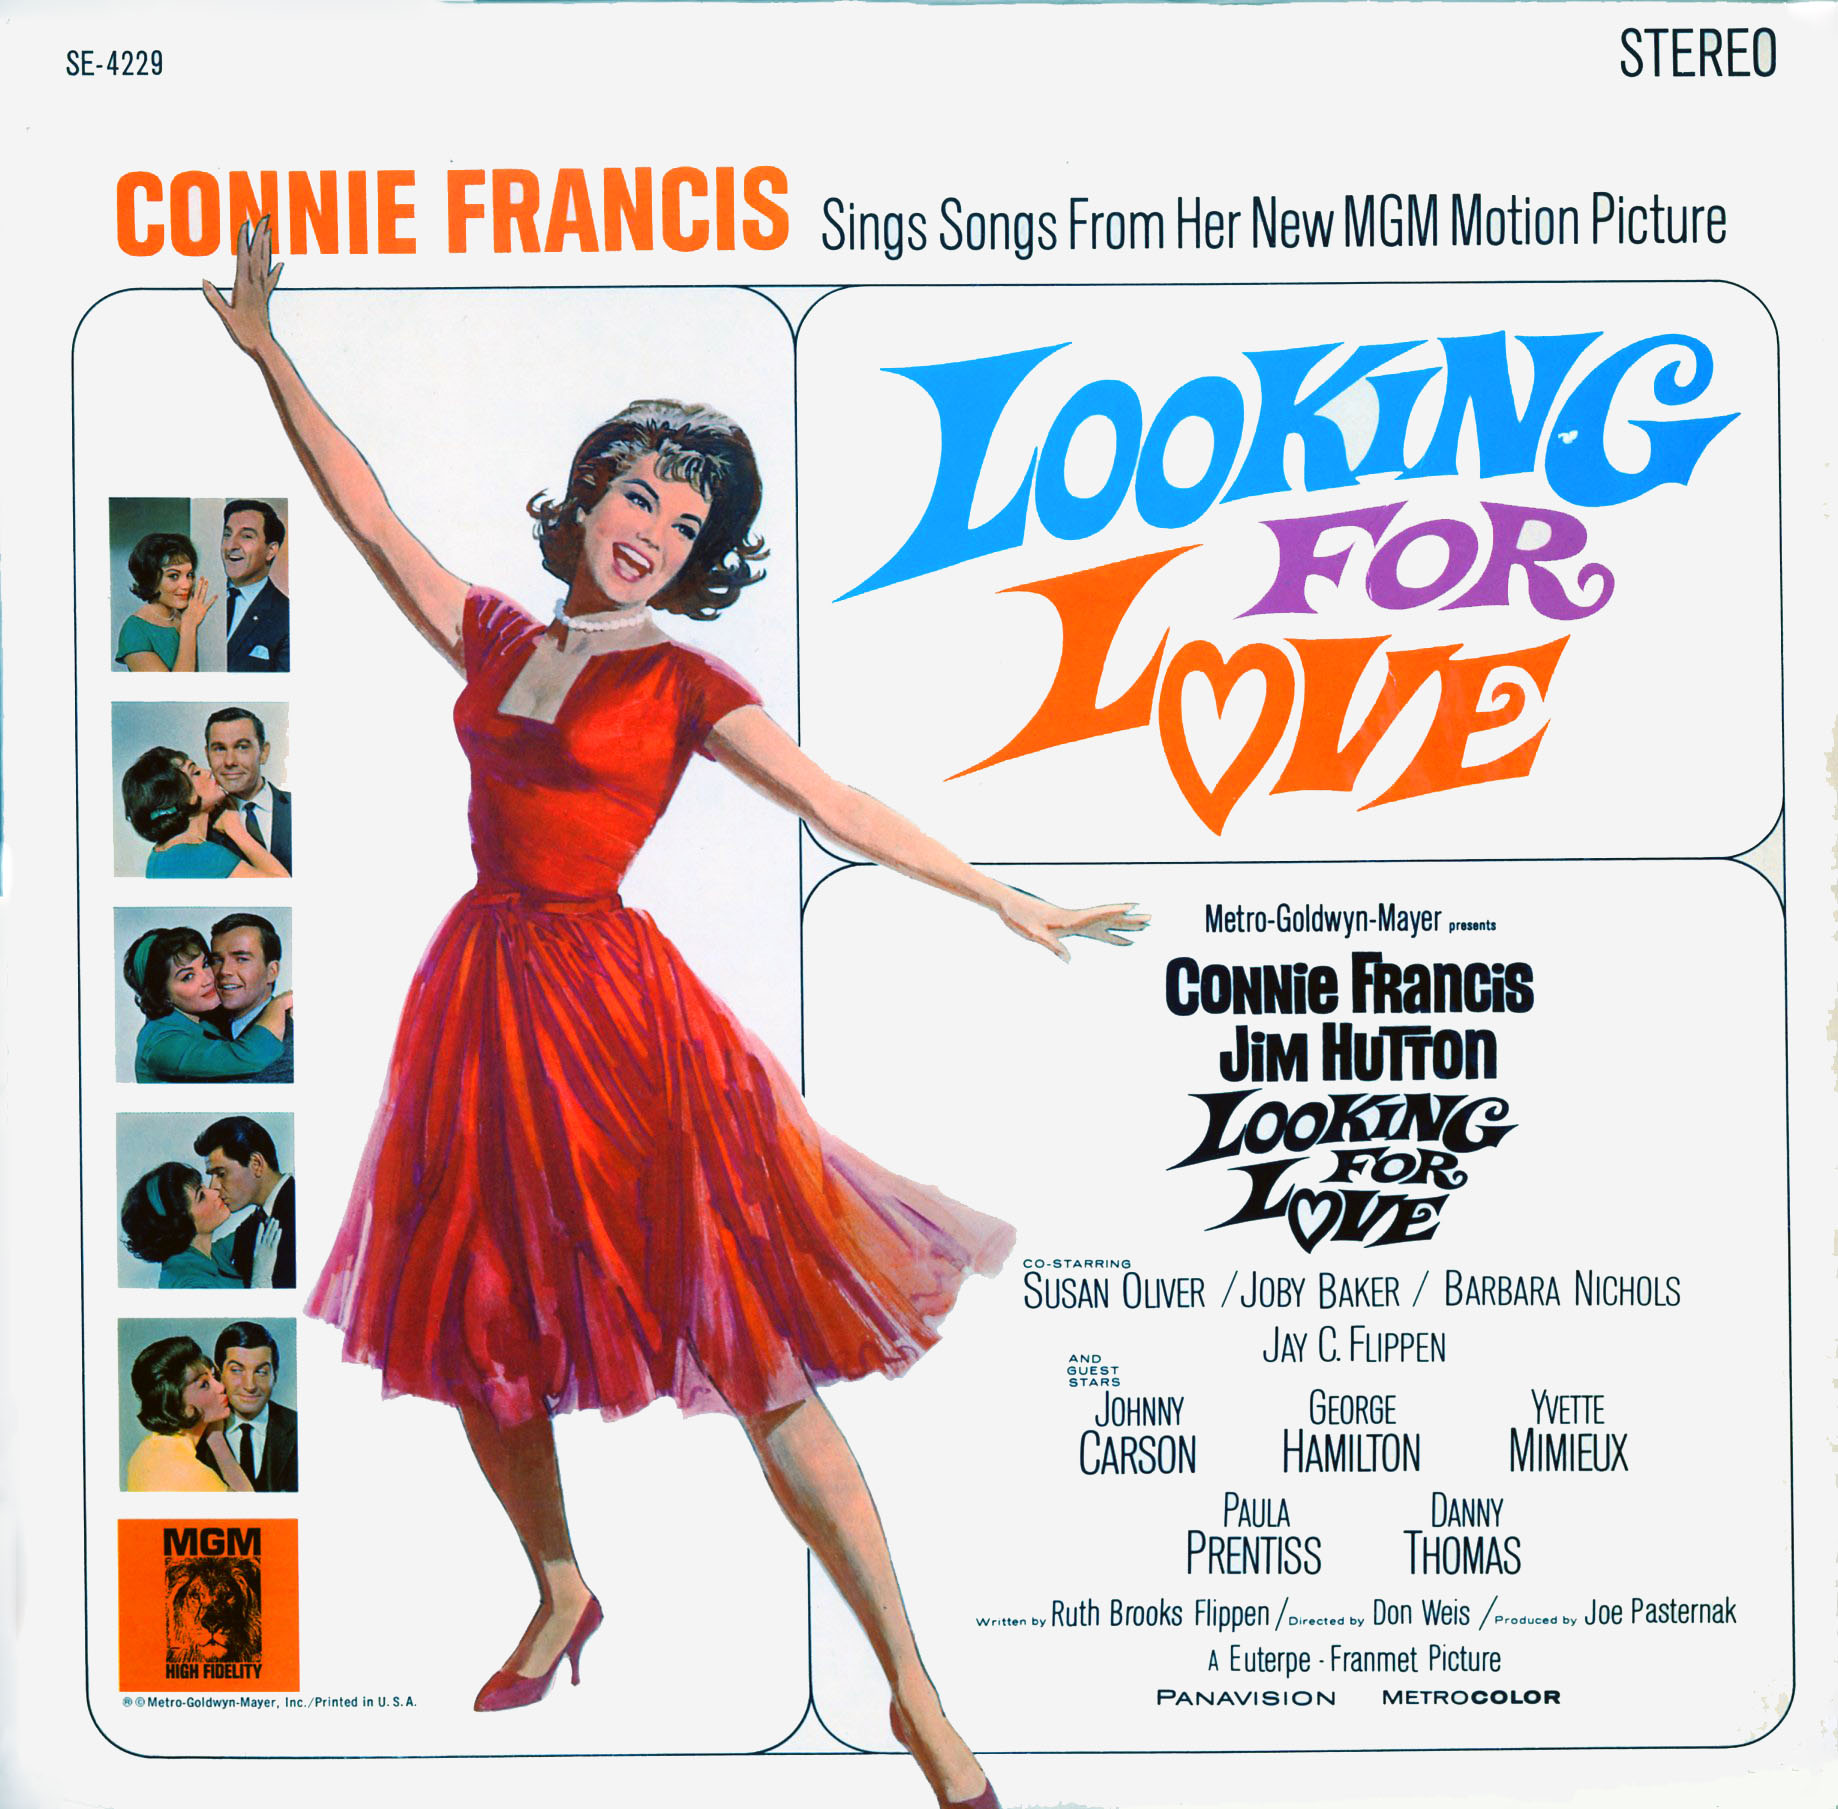 SE4229 - Looking For Love - Connie Francis - Jim Hutton on CD